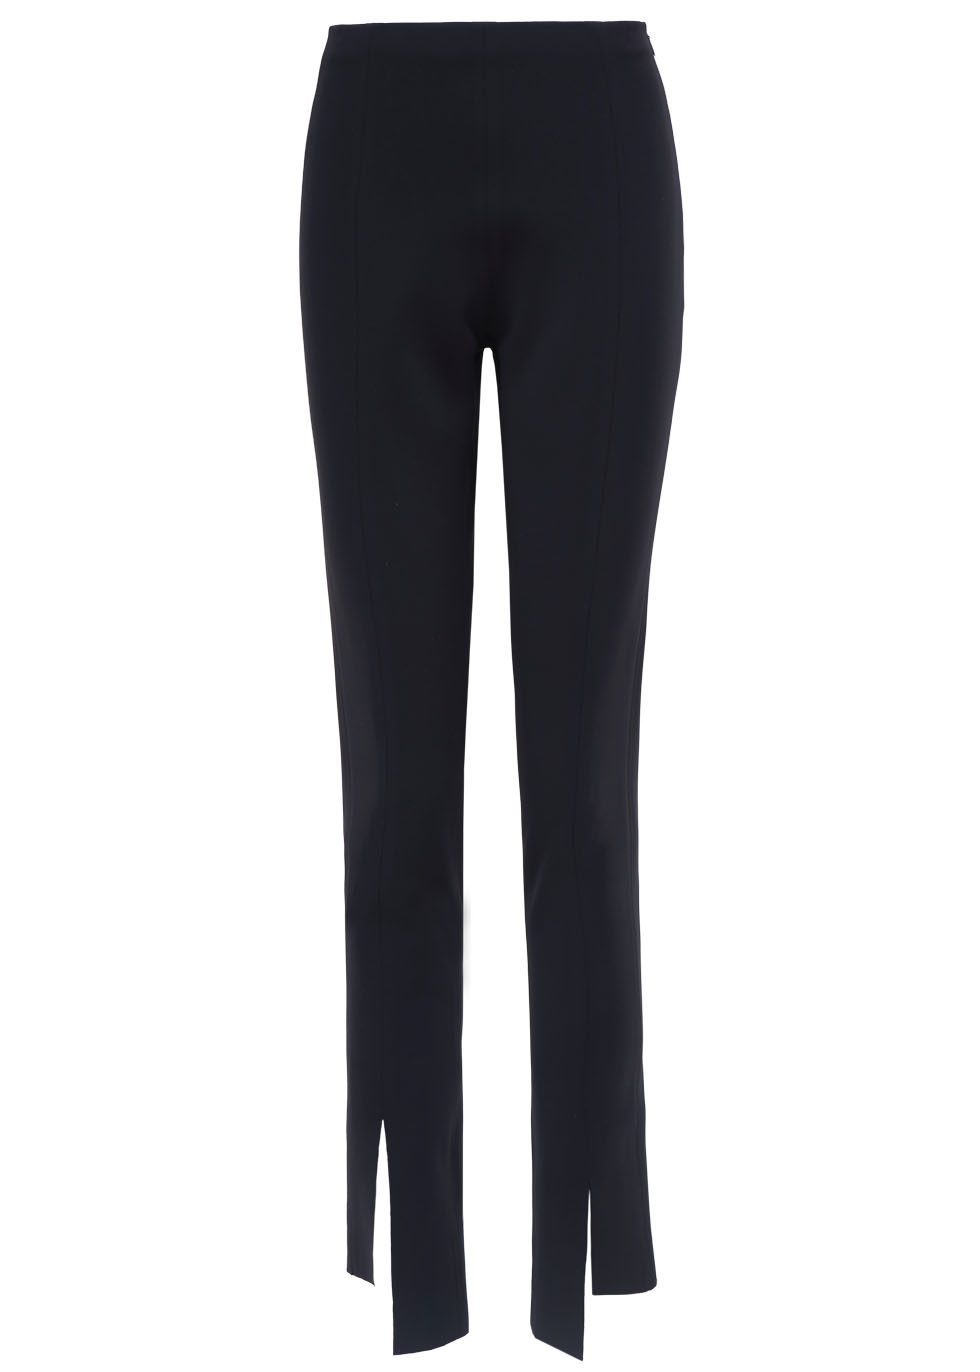 Front Slit Trousers-image.jpg